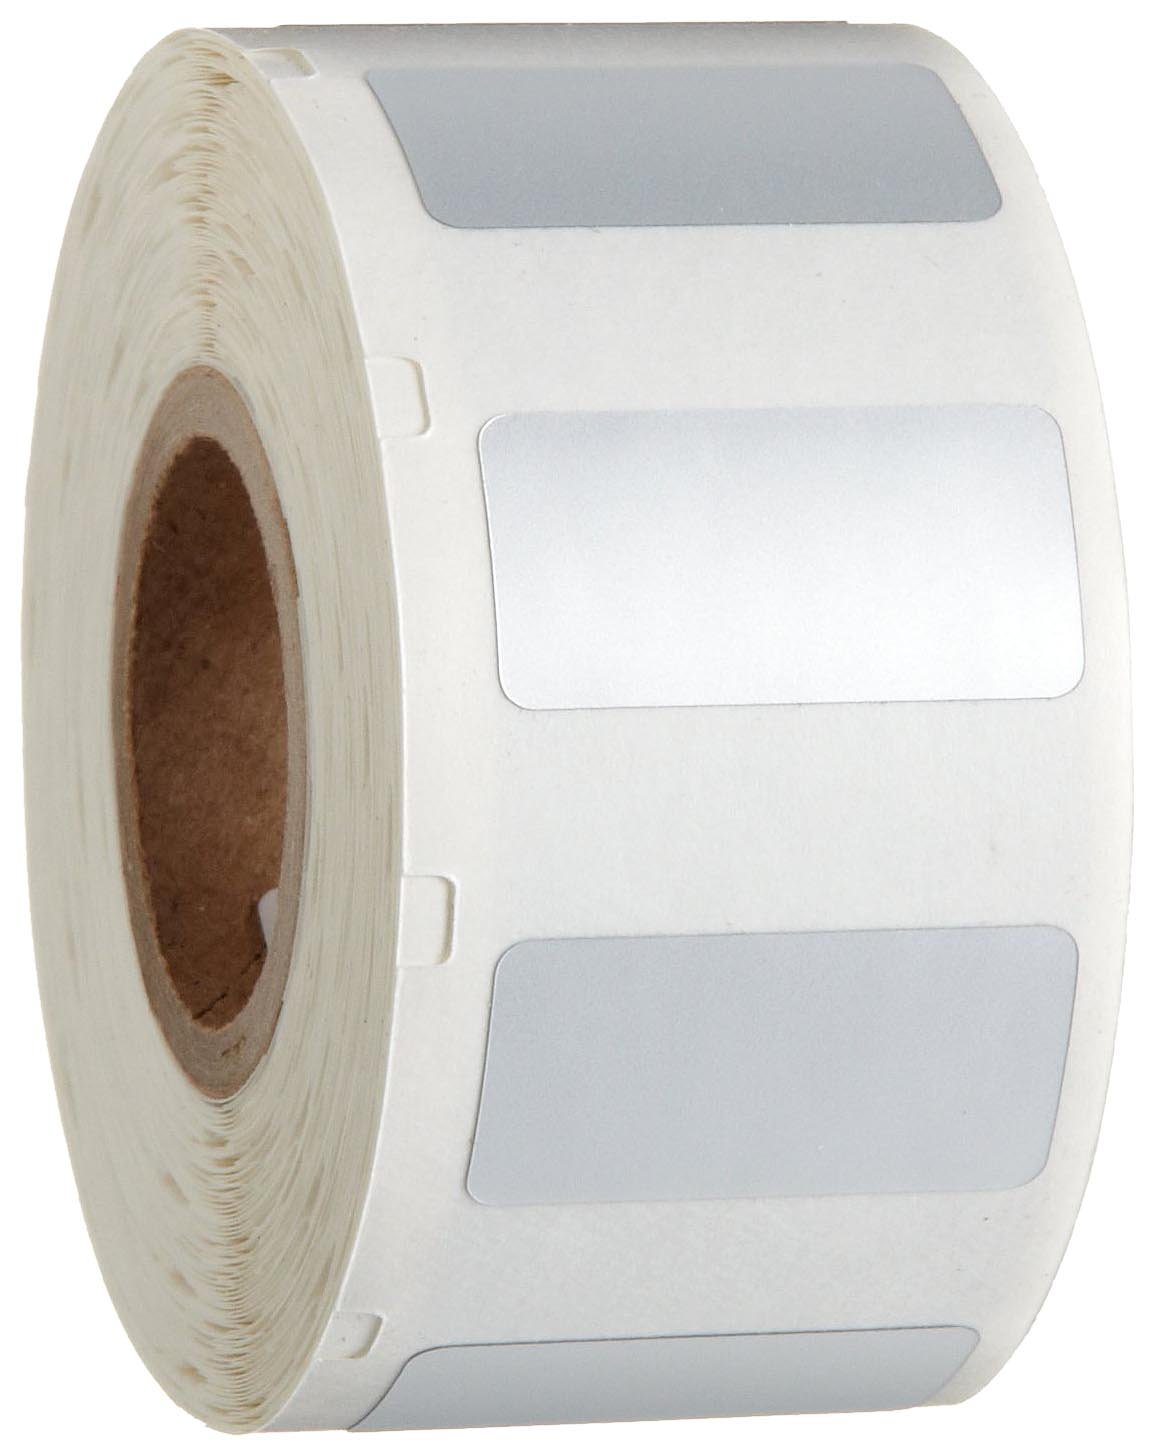 "Brady CL-311-969 I.D. PRO Plus LS2000 And BradyMarker 1/2"" Height, 1"" Width, B-969 Metalized Polyester Silver Color XC Plus Printer Label (500 Per Roll)"